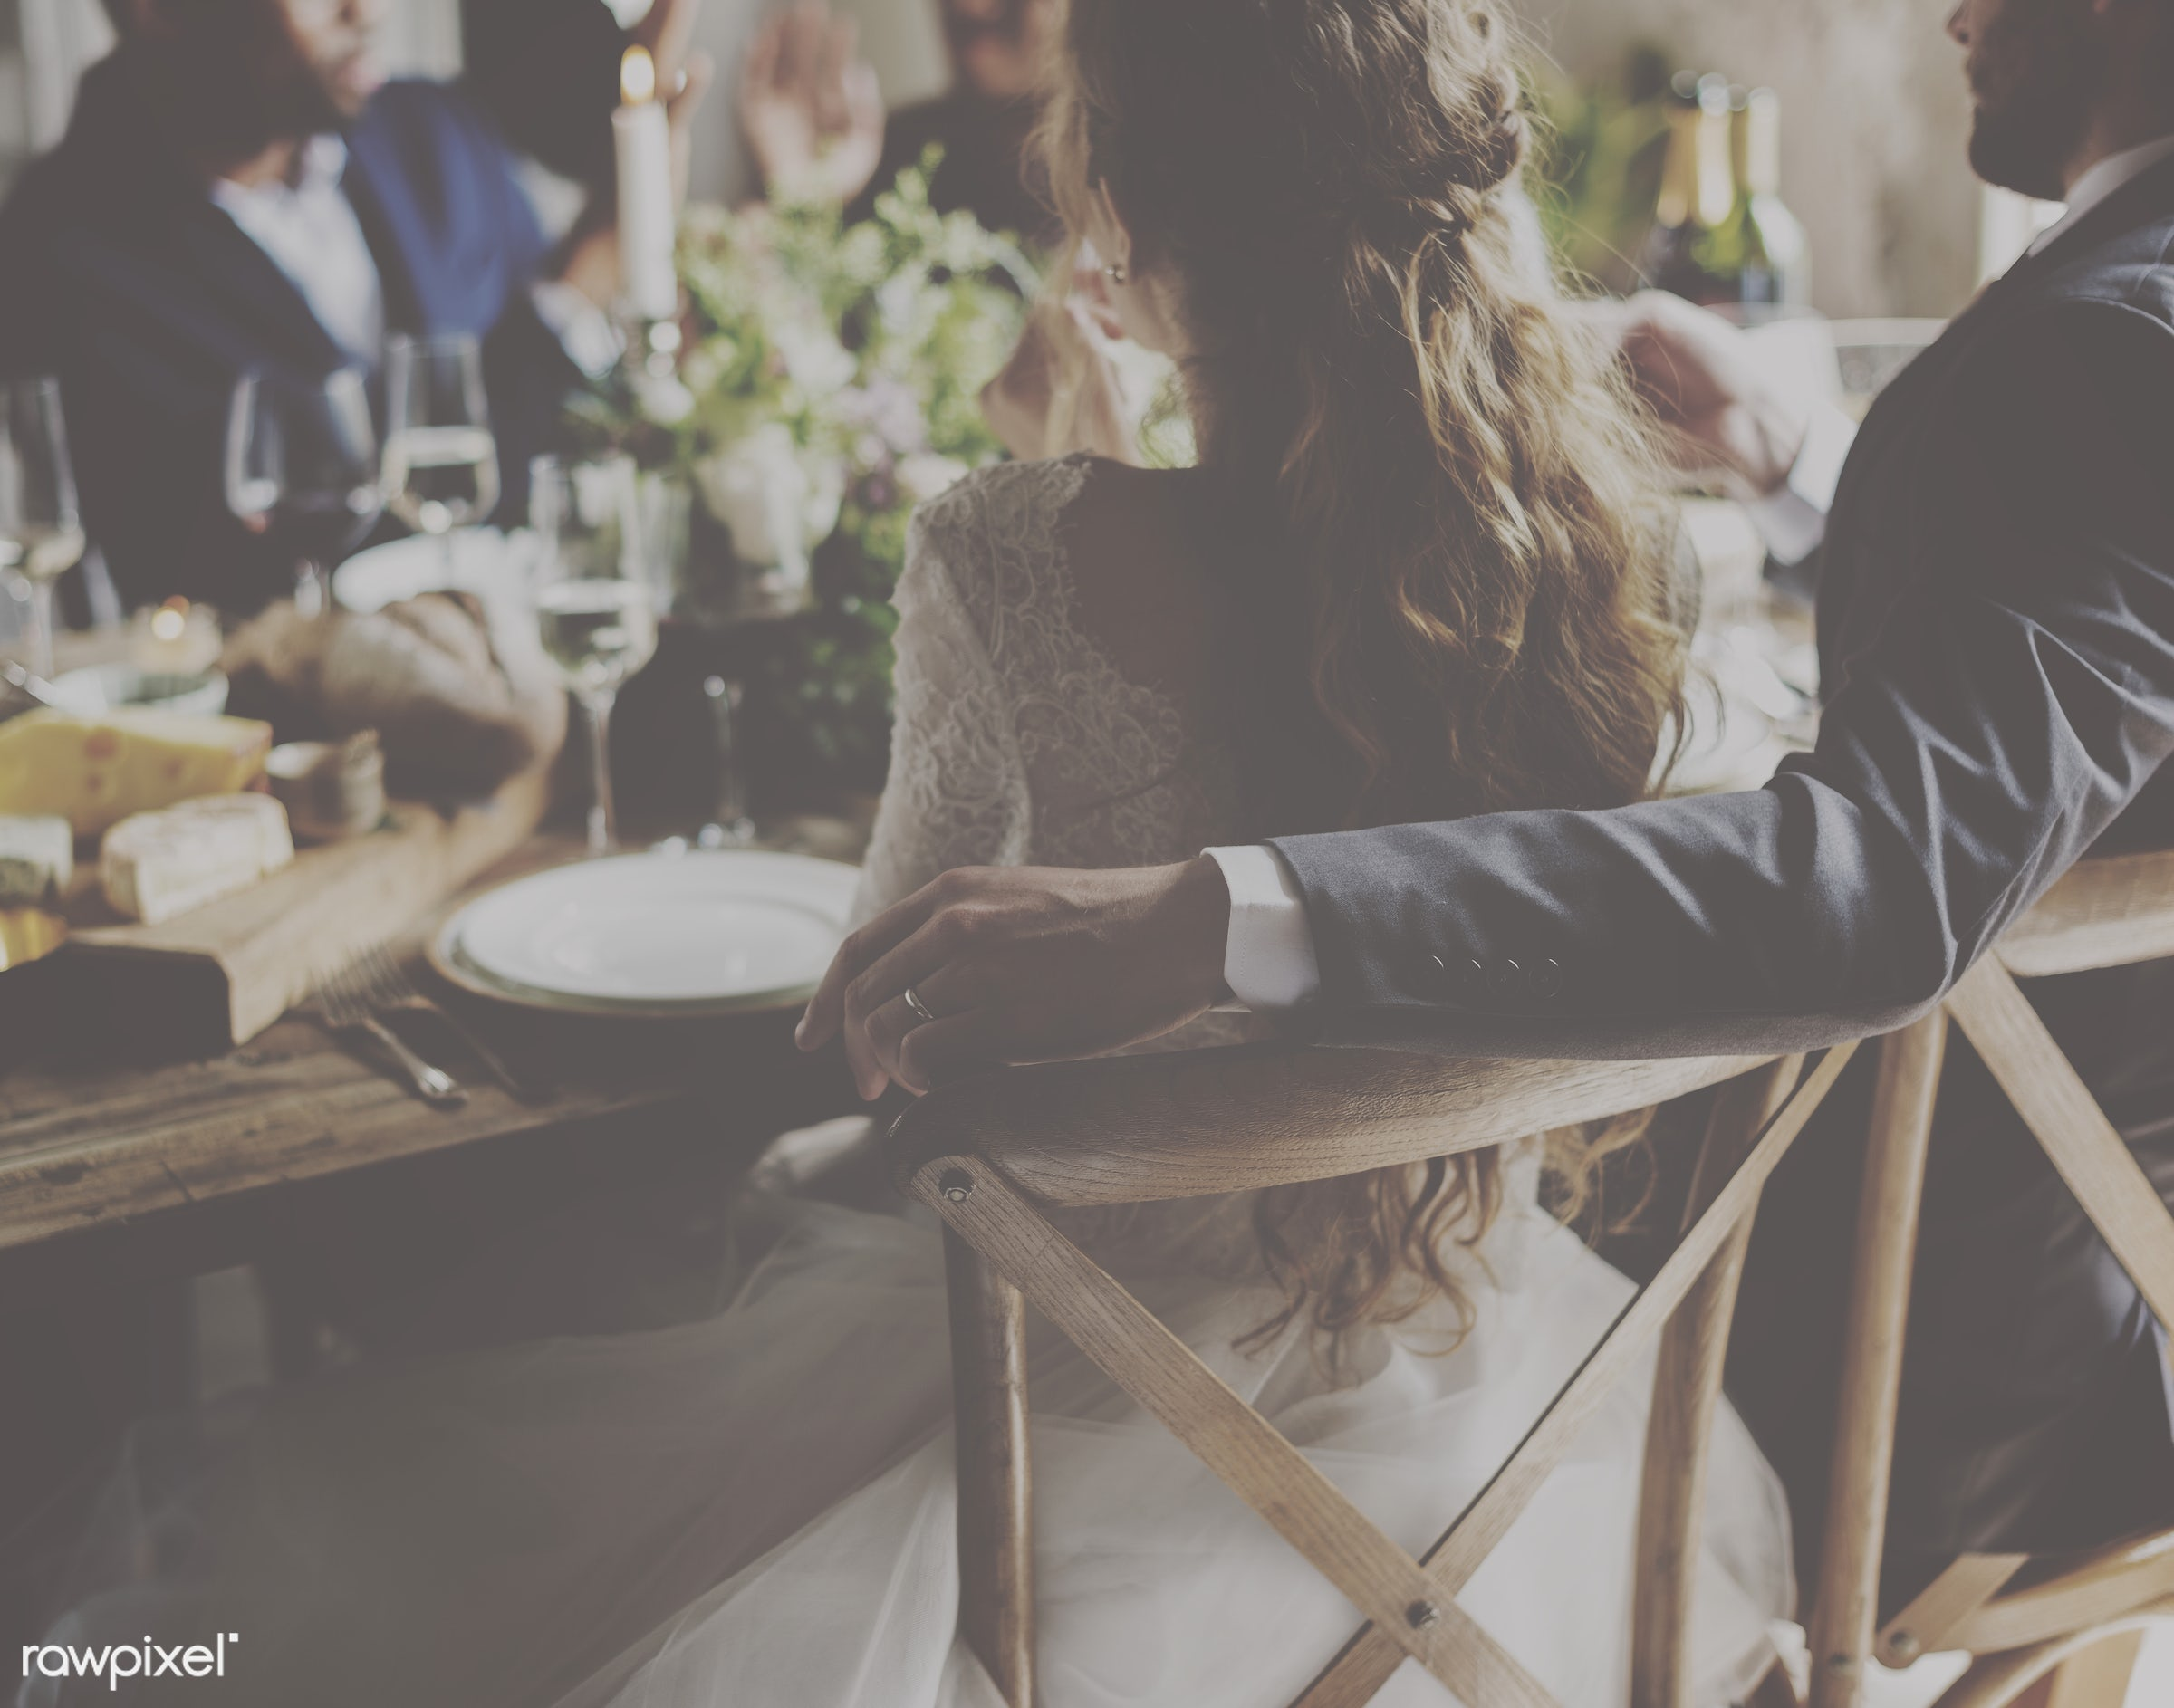 person, occasion, people, together, love, married, friends, hands, event, woman, gather, couple, men, bride, celebrate, man...